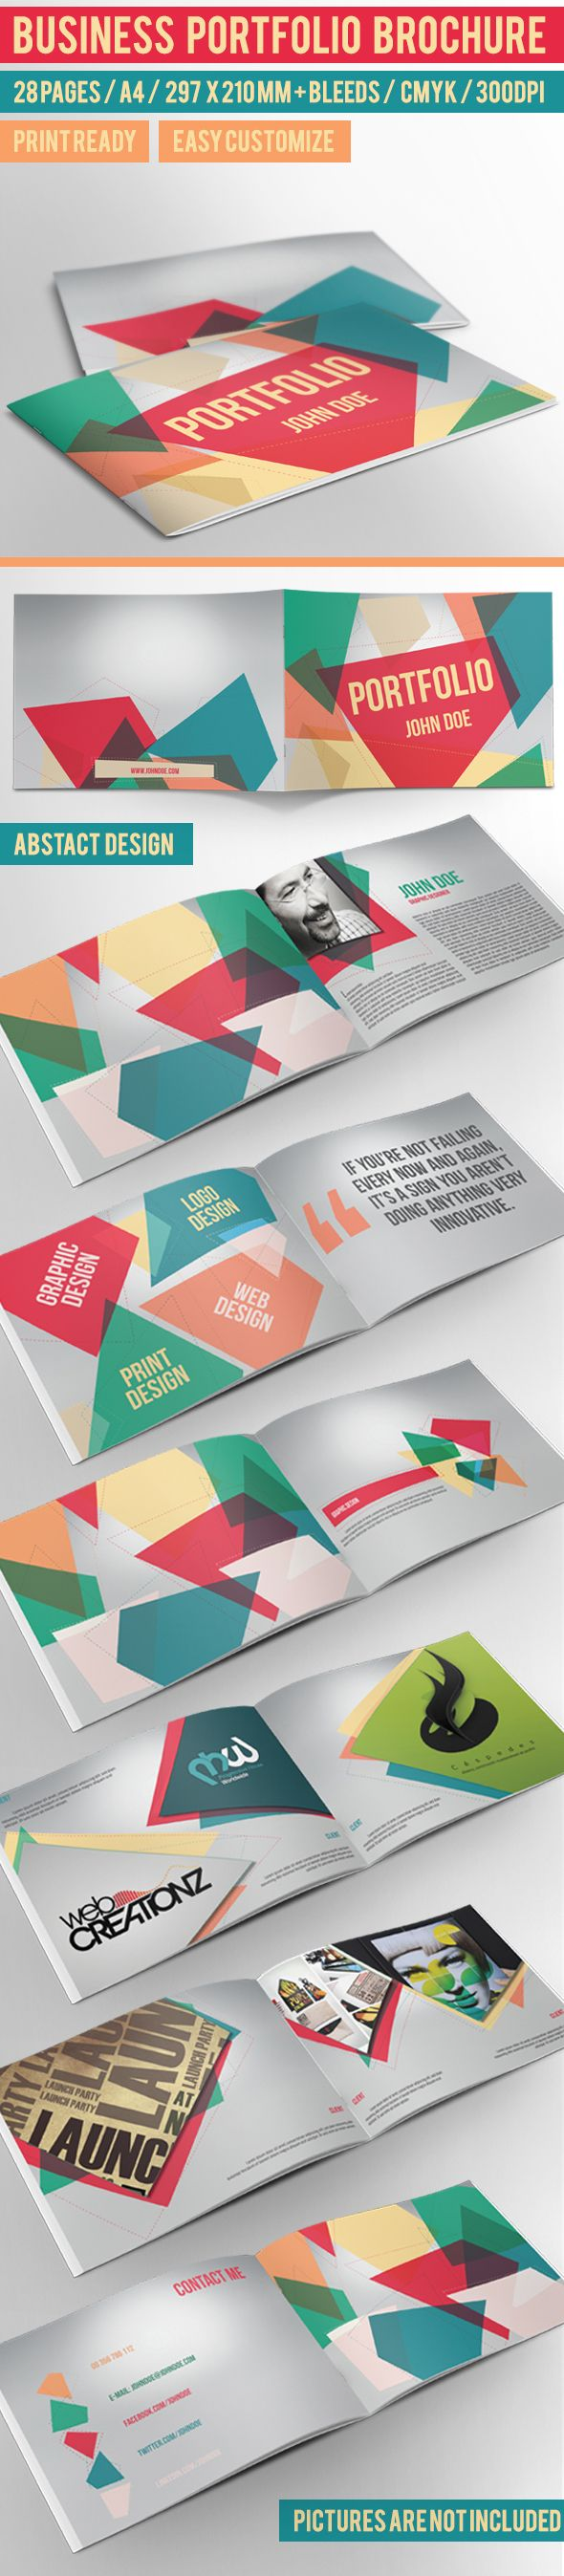 Business Portfolio Brochure - InDesign Template by crew55design, via ...